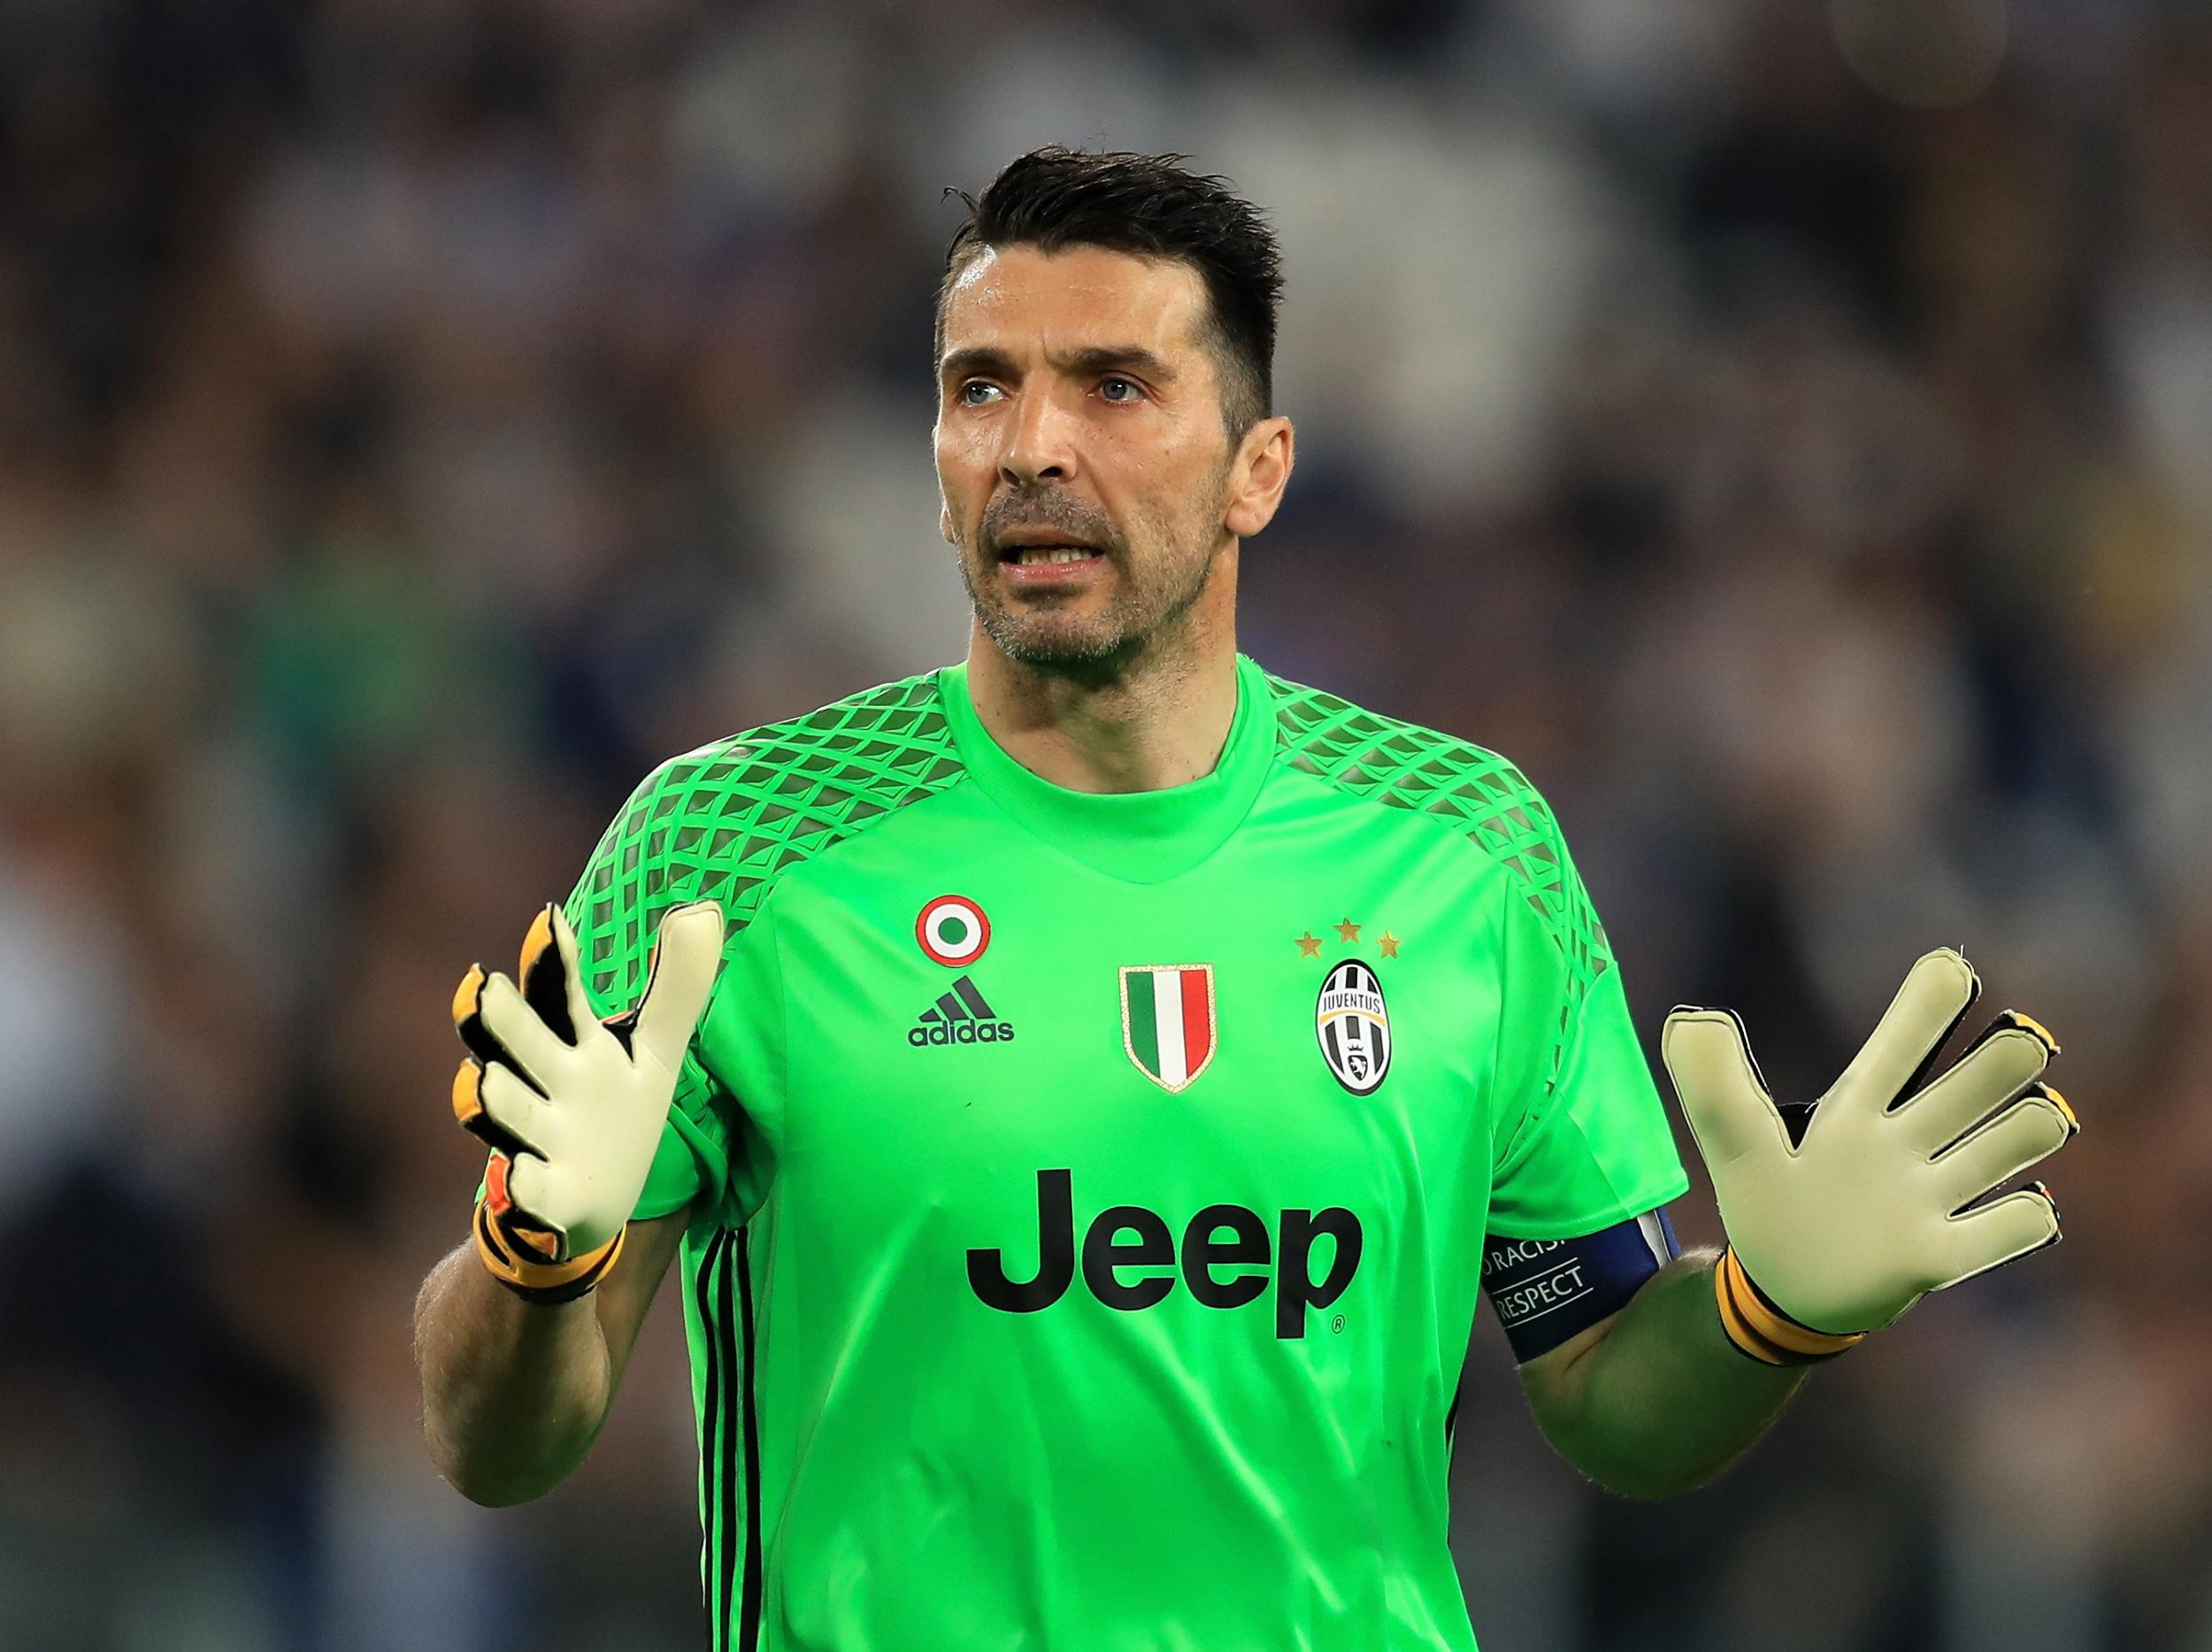 https://static.independent.co.uk/s3fs-public/thumbnails/image/2017/05/09/21/01-buffon.jpg